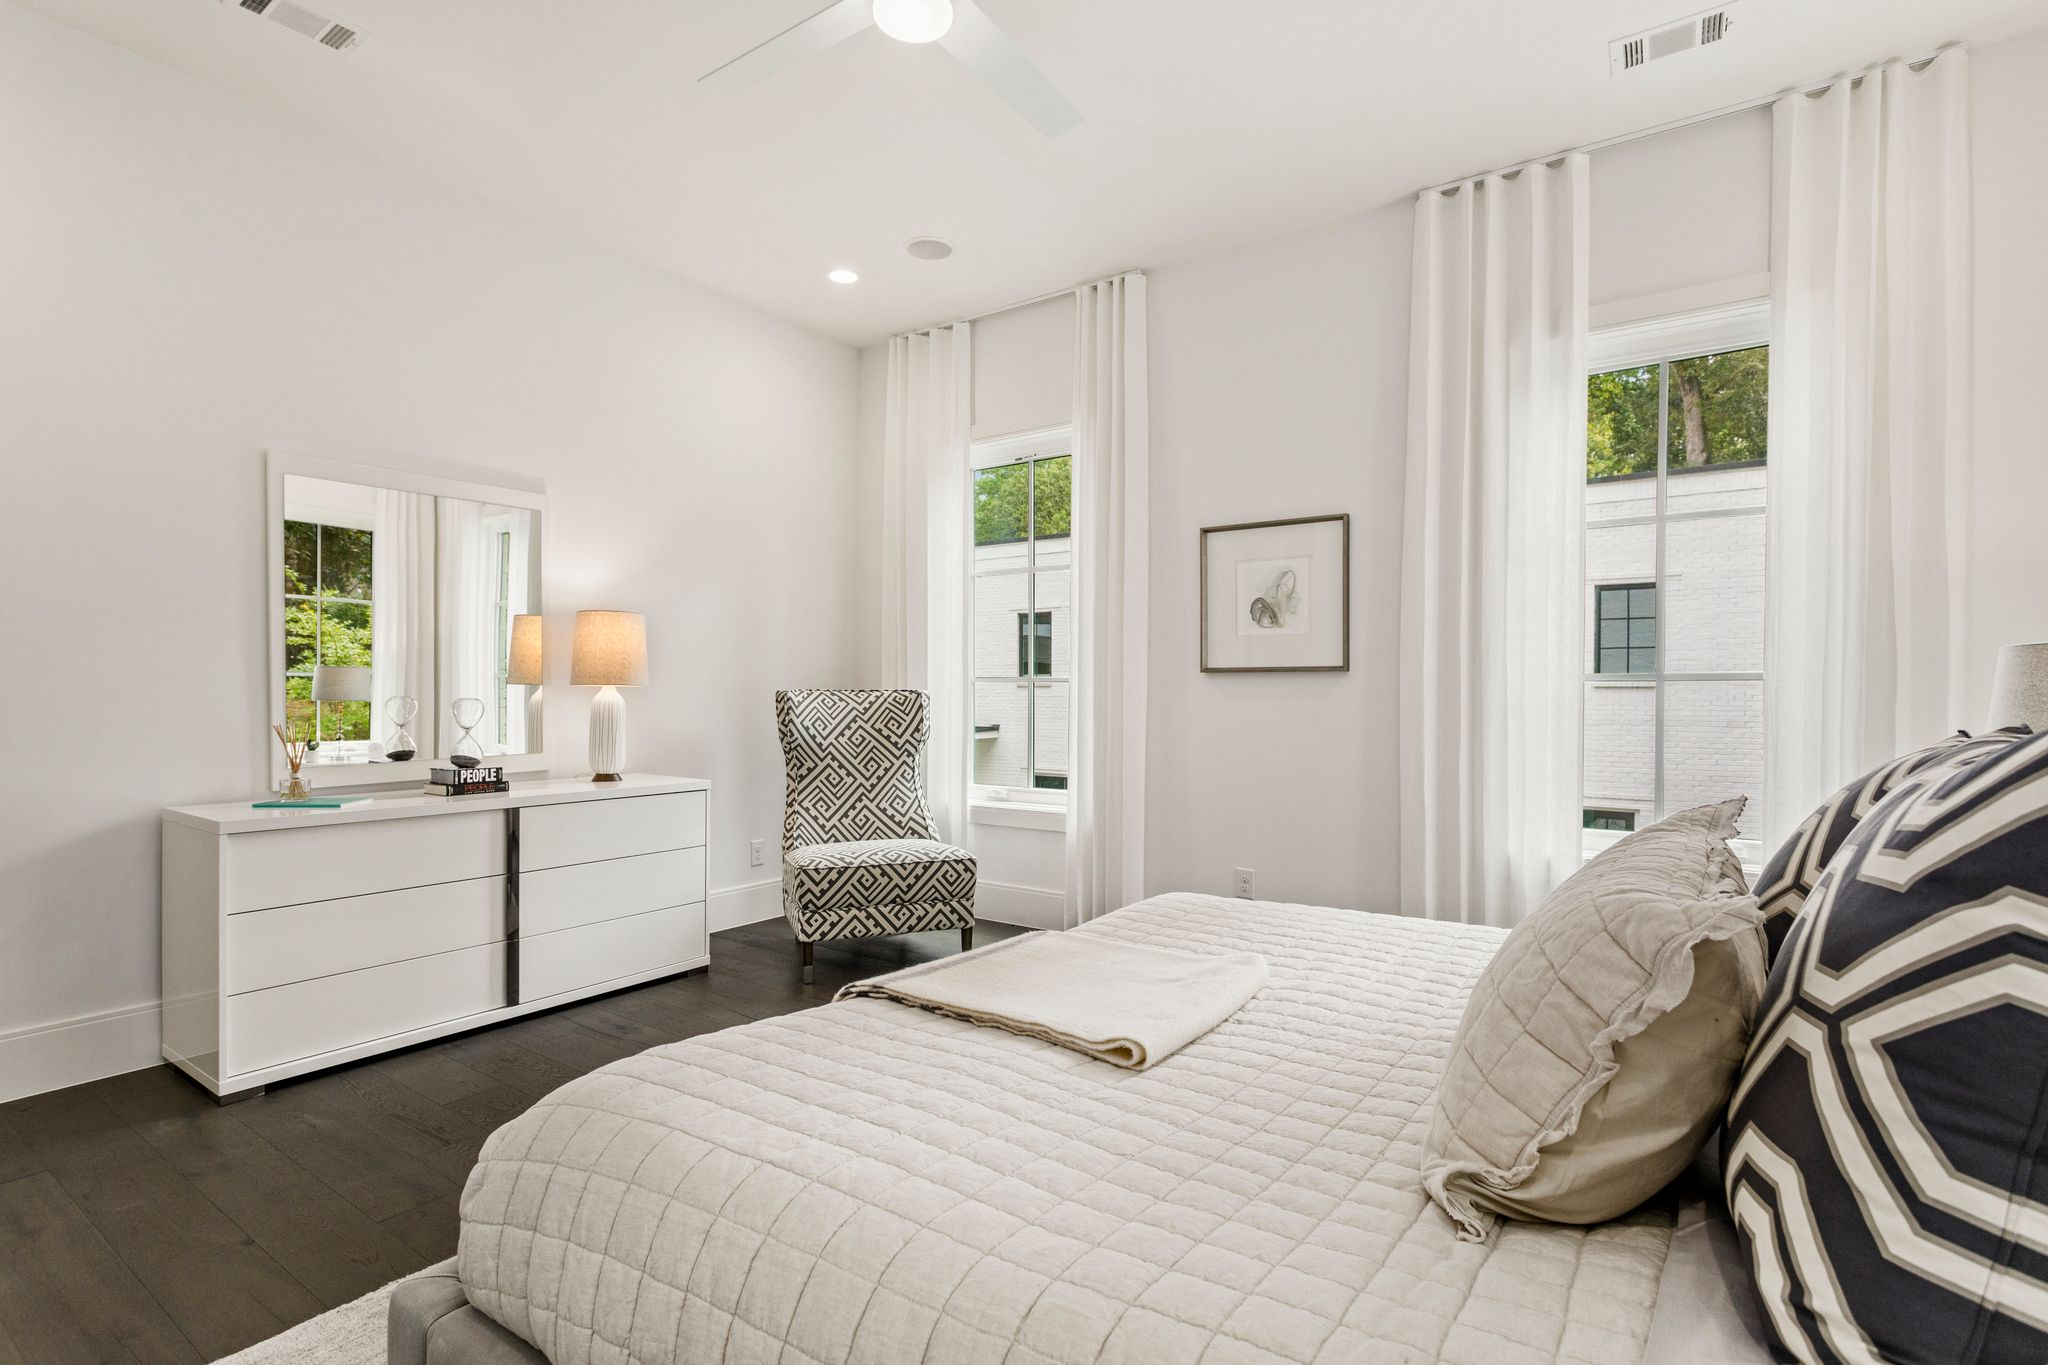 Bedroom featured in the Olmsted Condo By Minerva Homes in Atlanta, GA